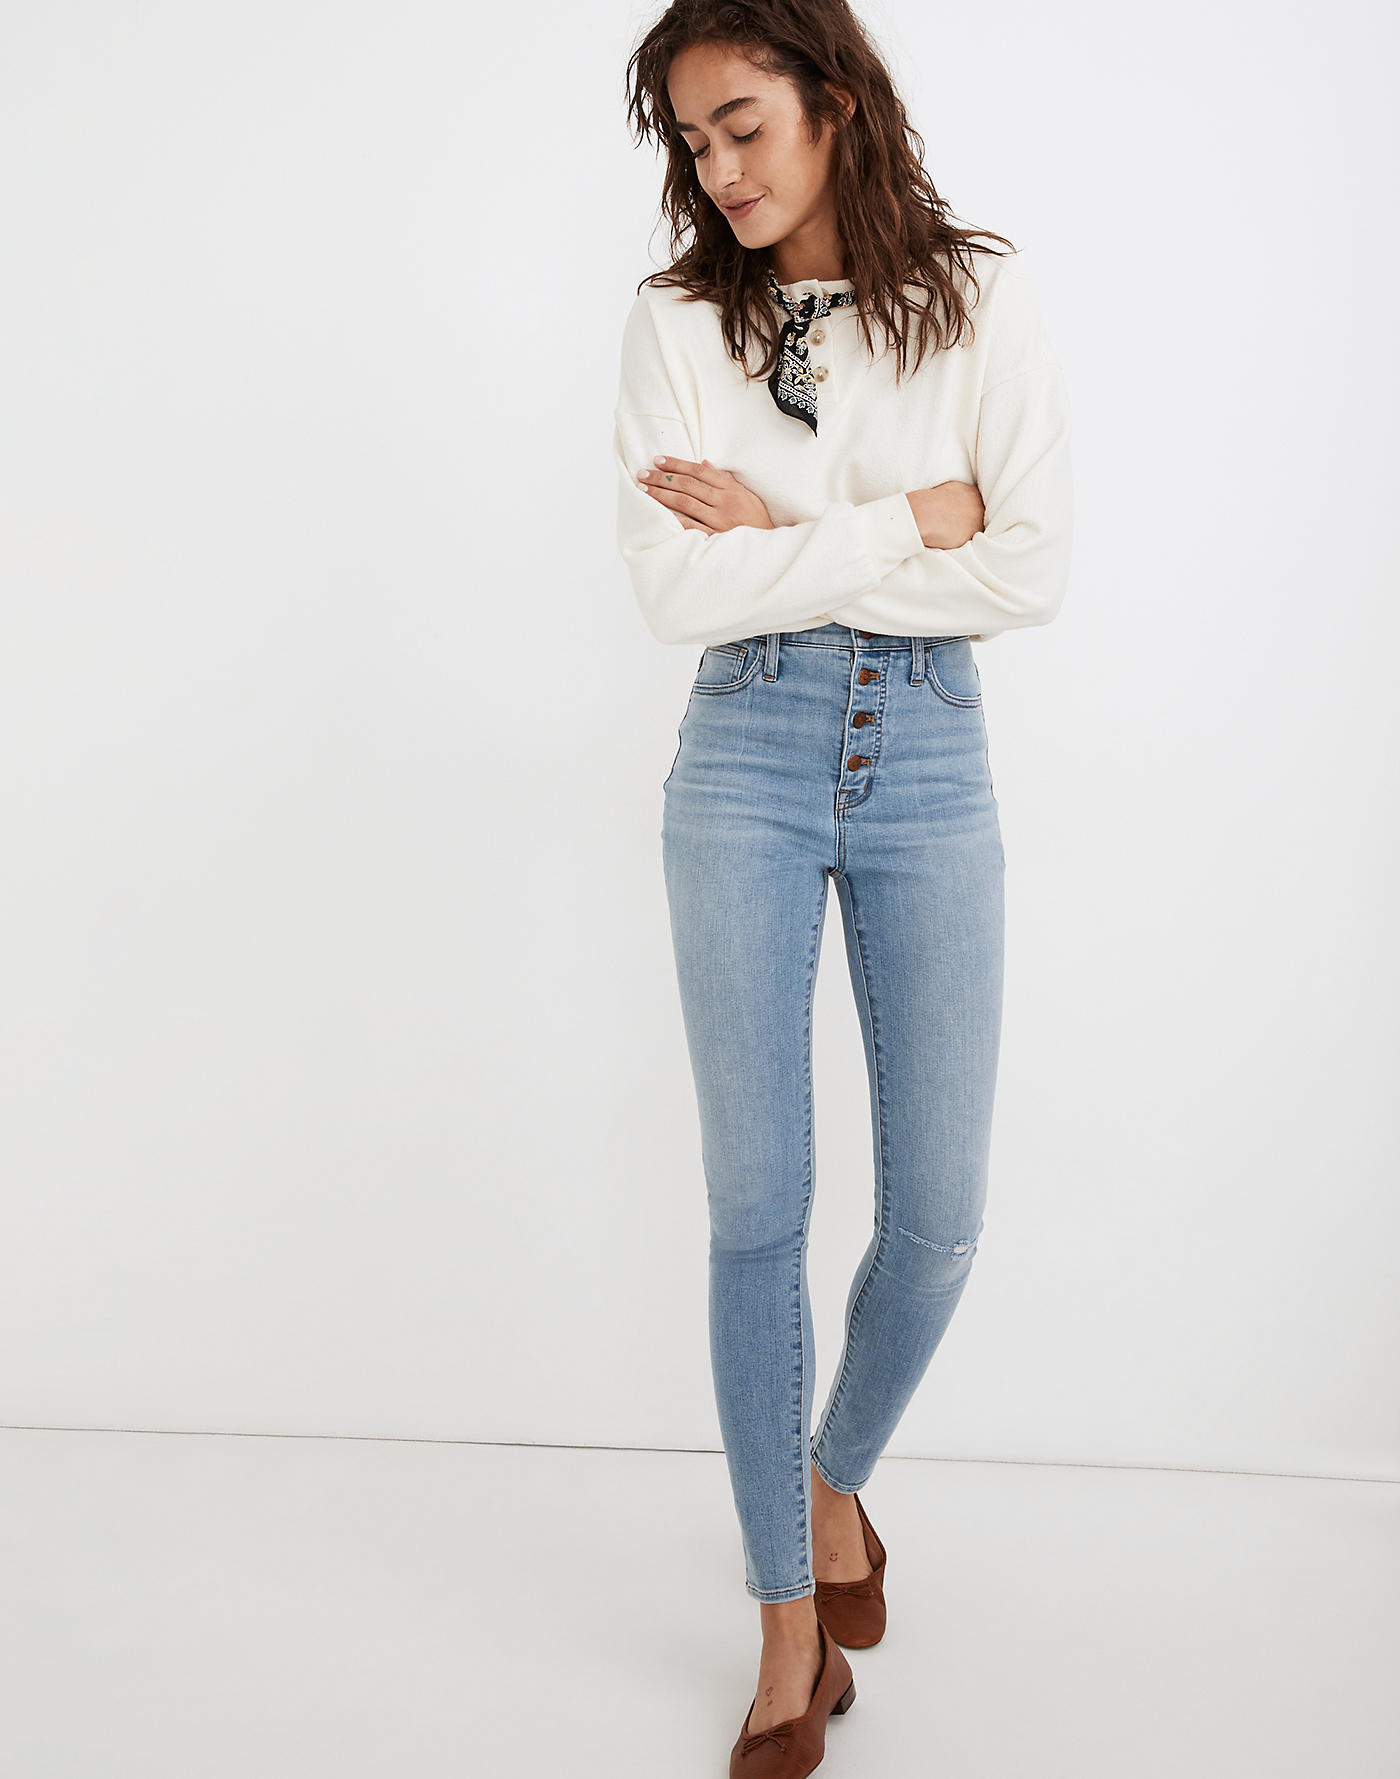 Madewell 11 High-Rise Roadtripper Jeans in Beckwith Wash: Button-Front Edition